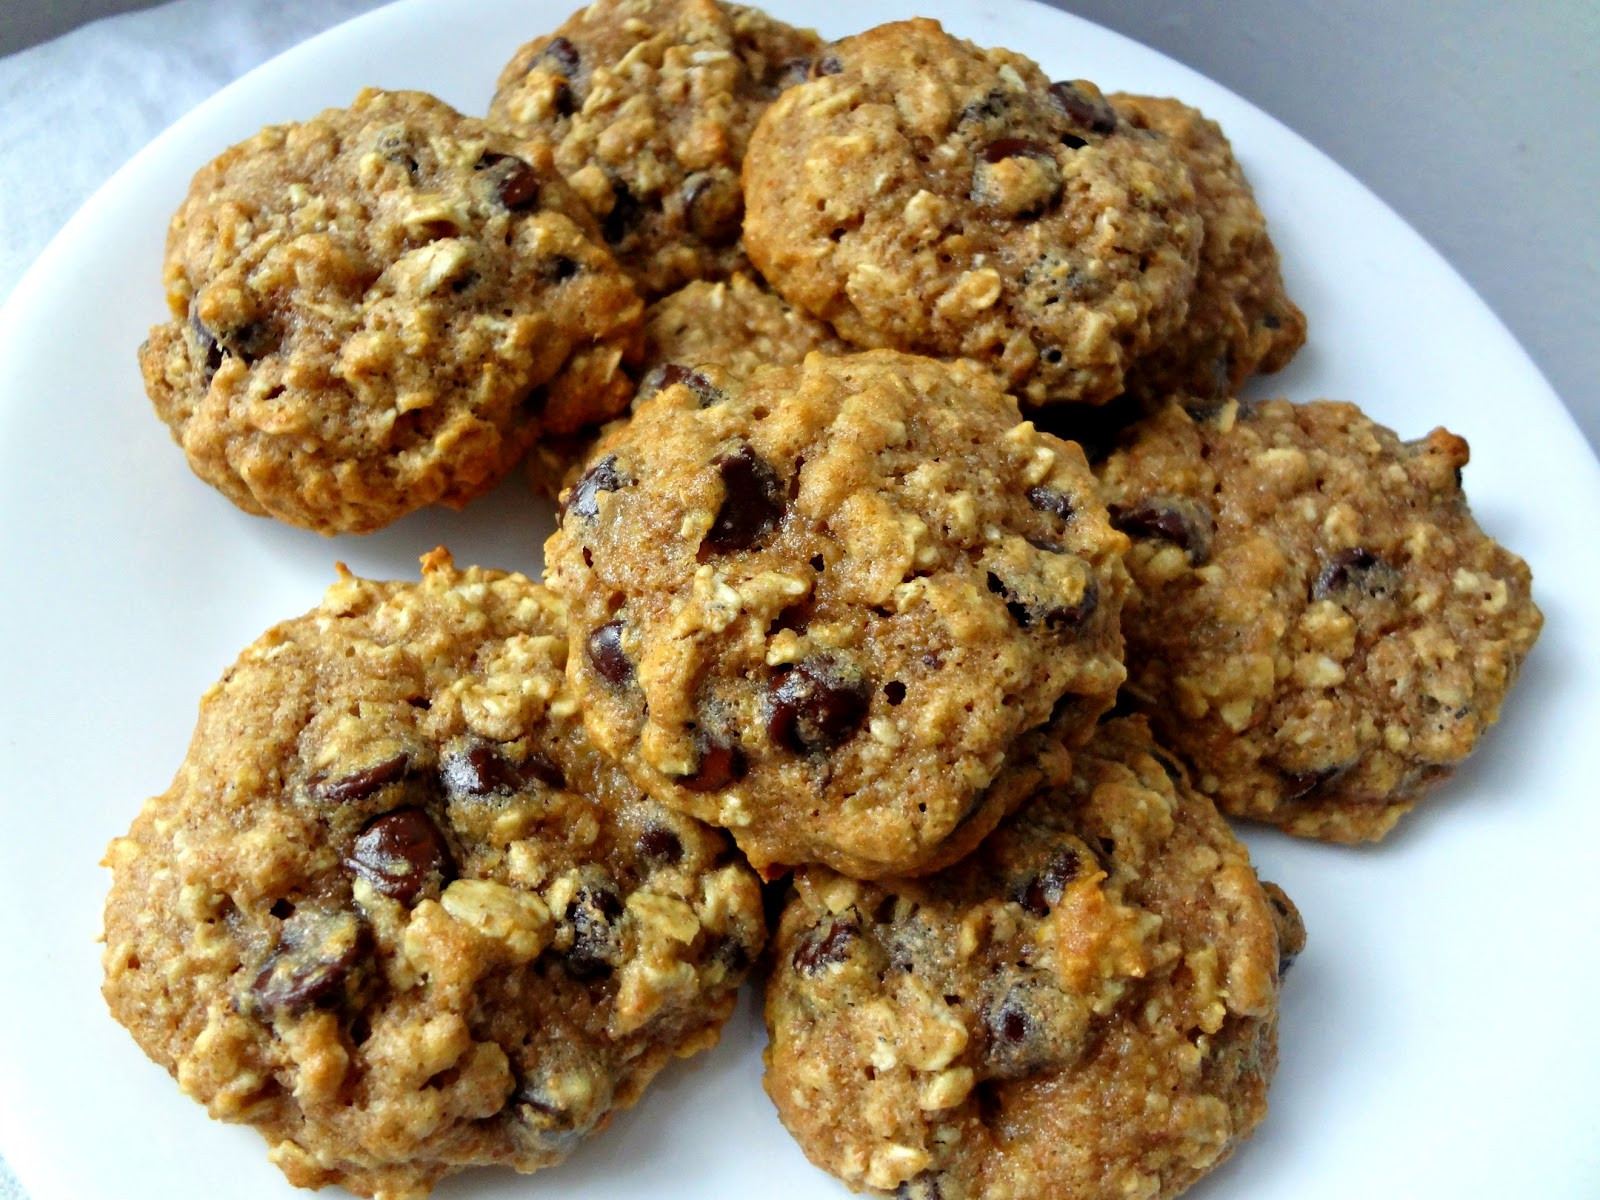 Healthy Oatmeal Chocolate Chip Cookies Applesauce  The Cooking Actress Healthy Oatmeal Chocolate Chip Cookies